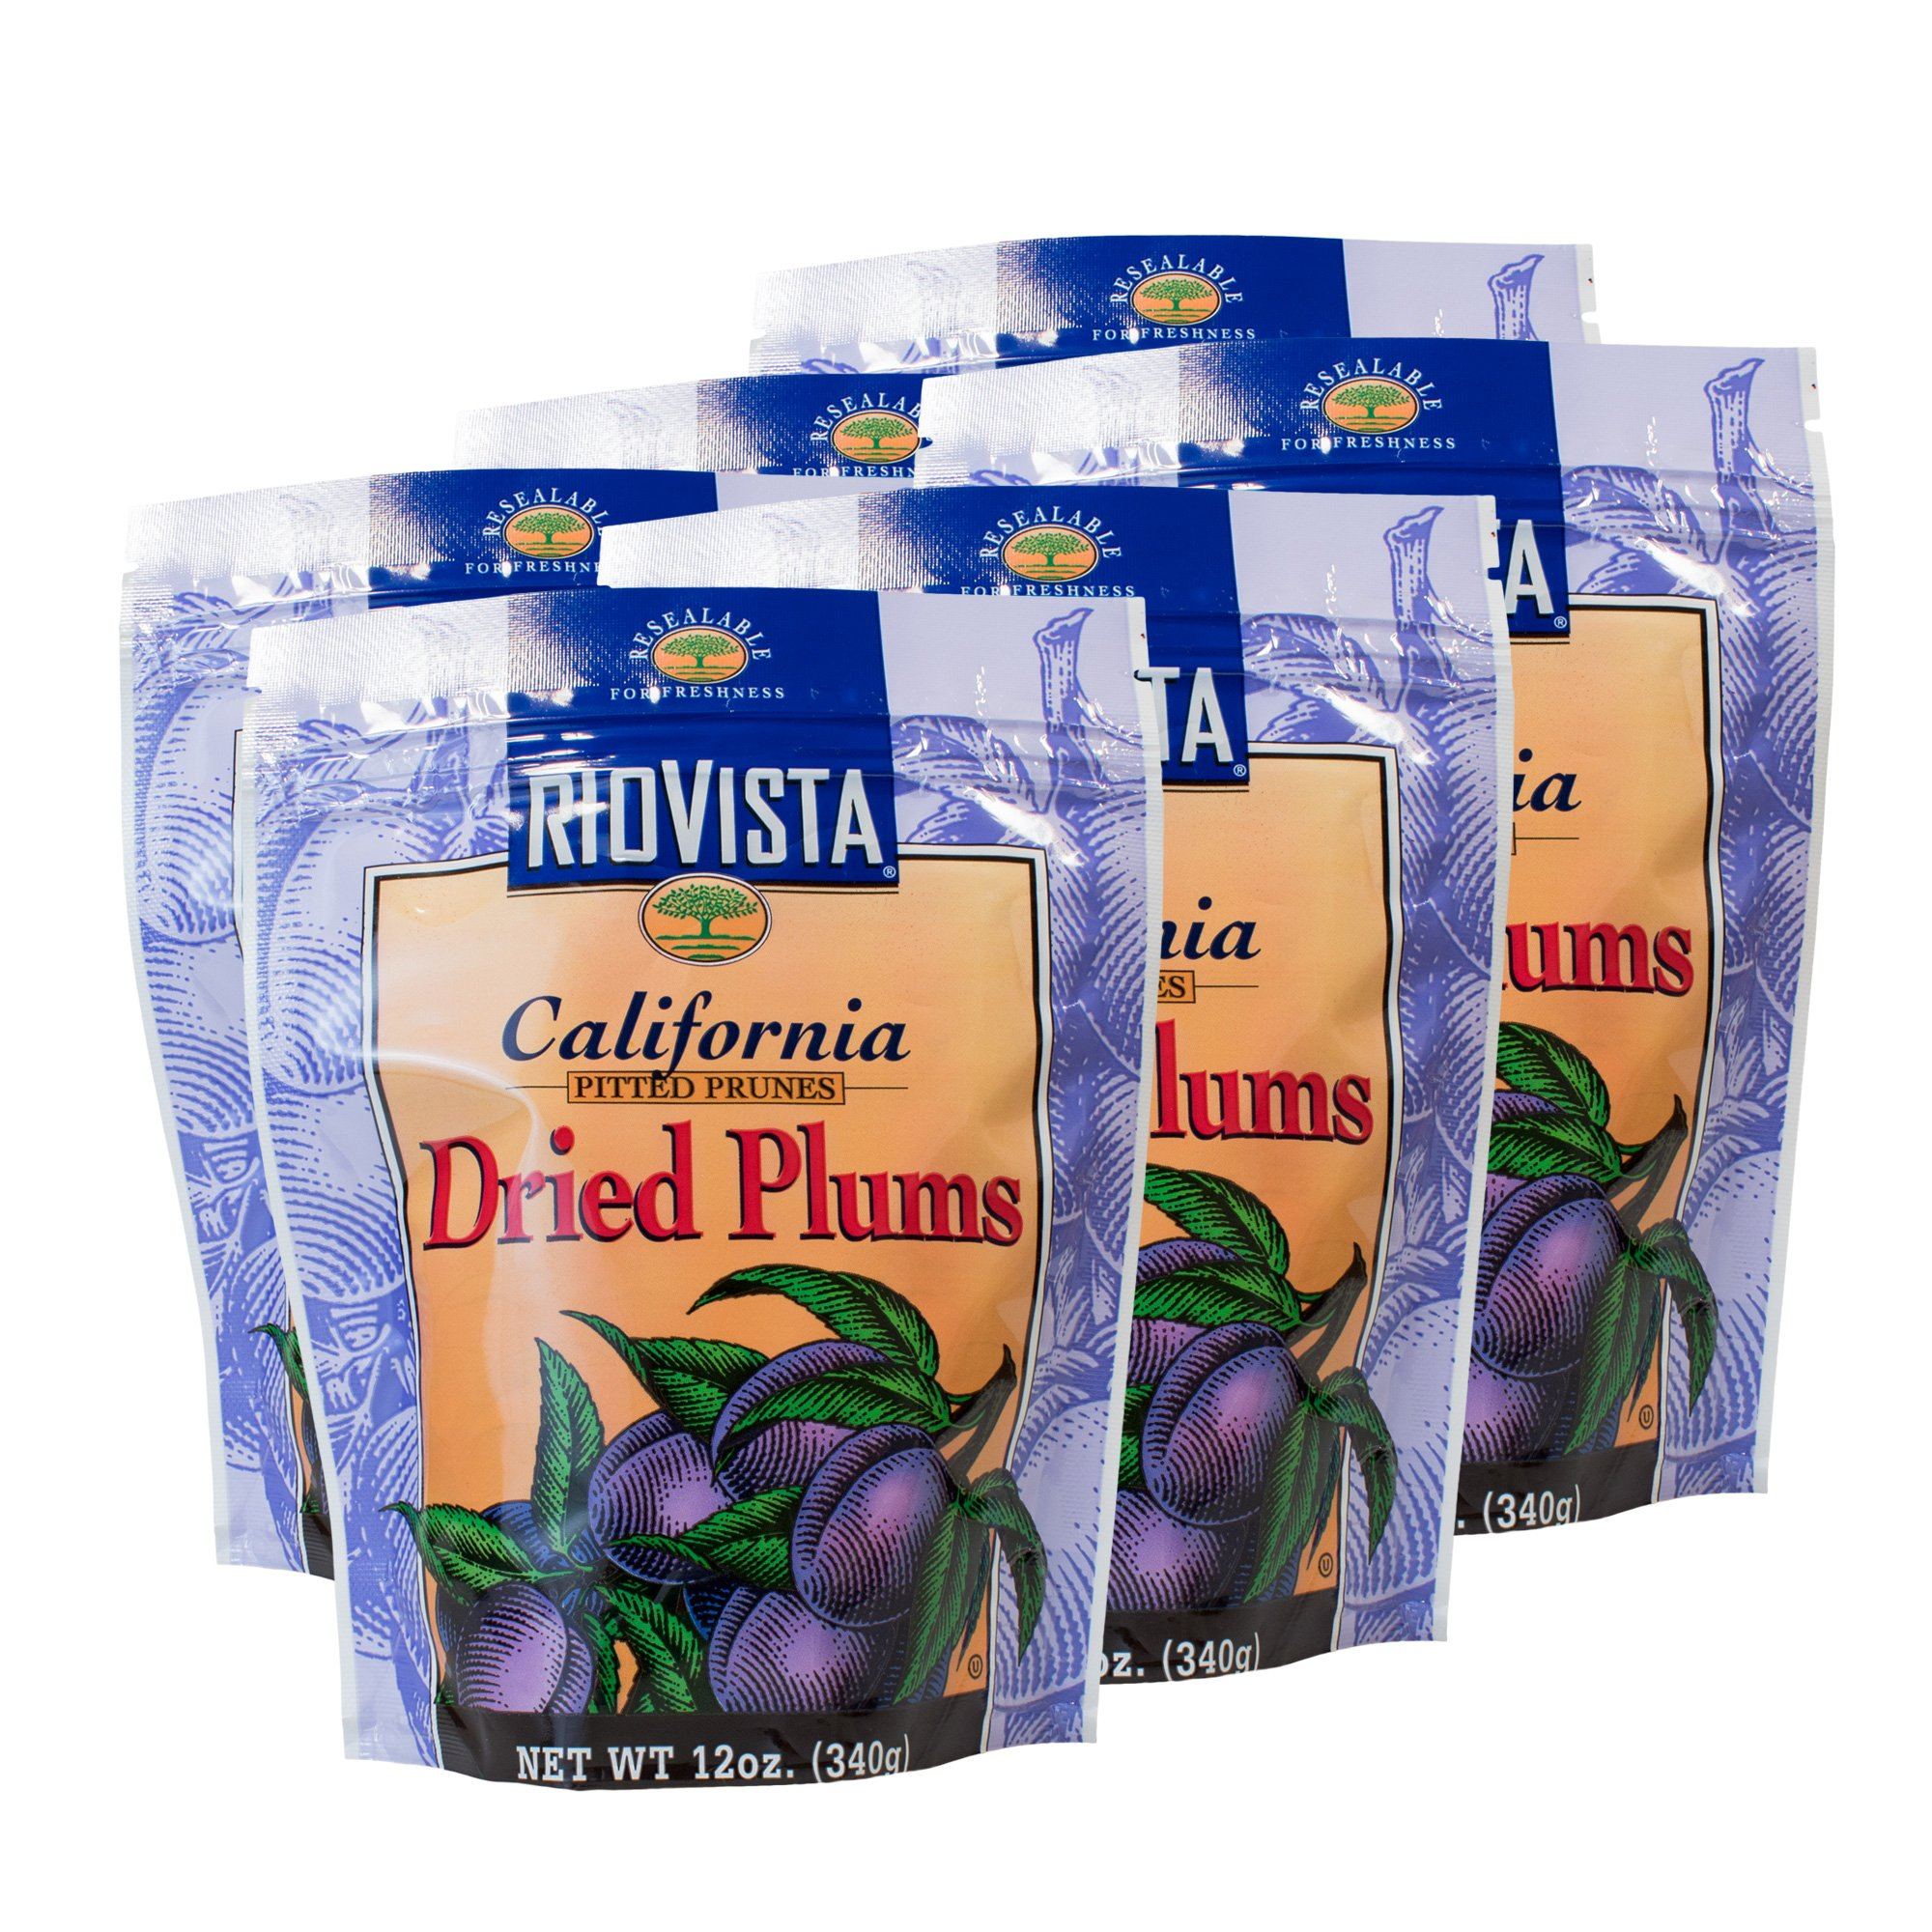 Wilbur Packing Company California Dried Plums, Pitted Prunes - 12oz. Bag (6 Pack)